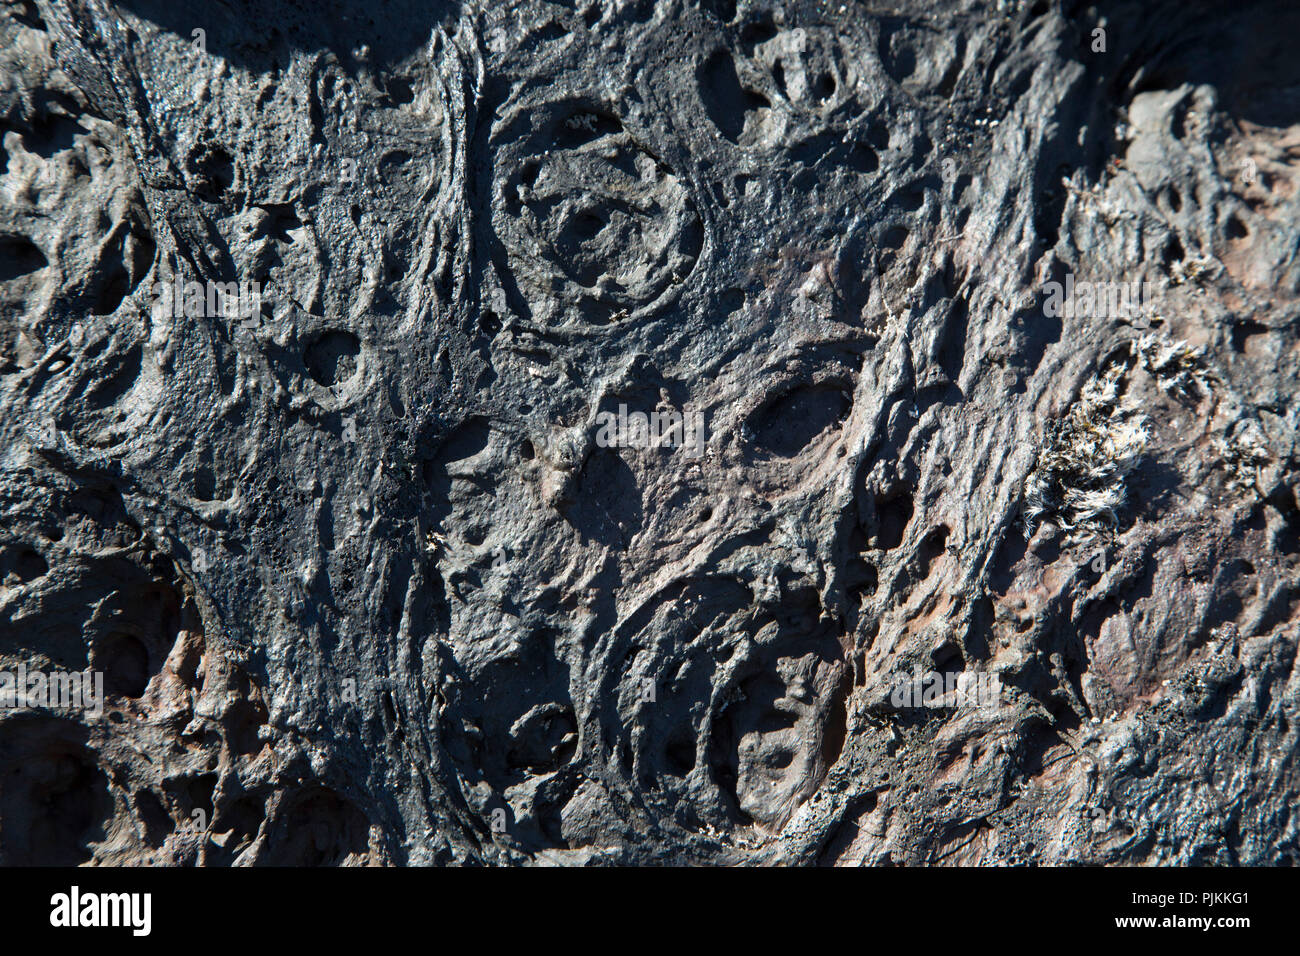 Iceland, cooled lava, detail, black and shiny - Stock Image